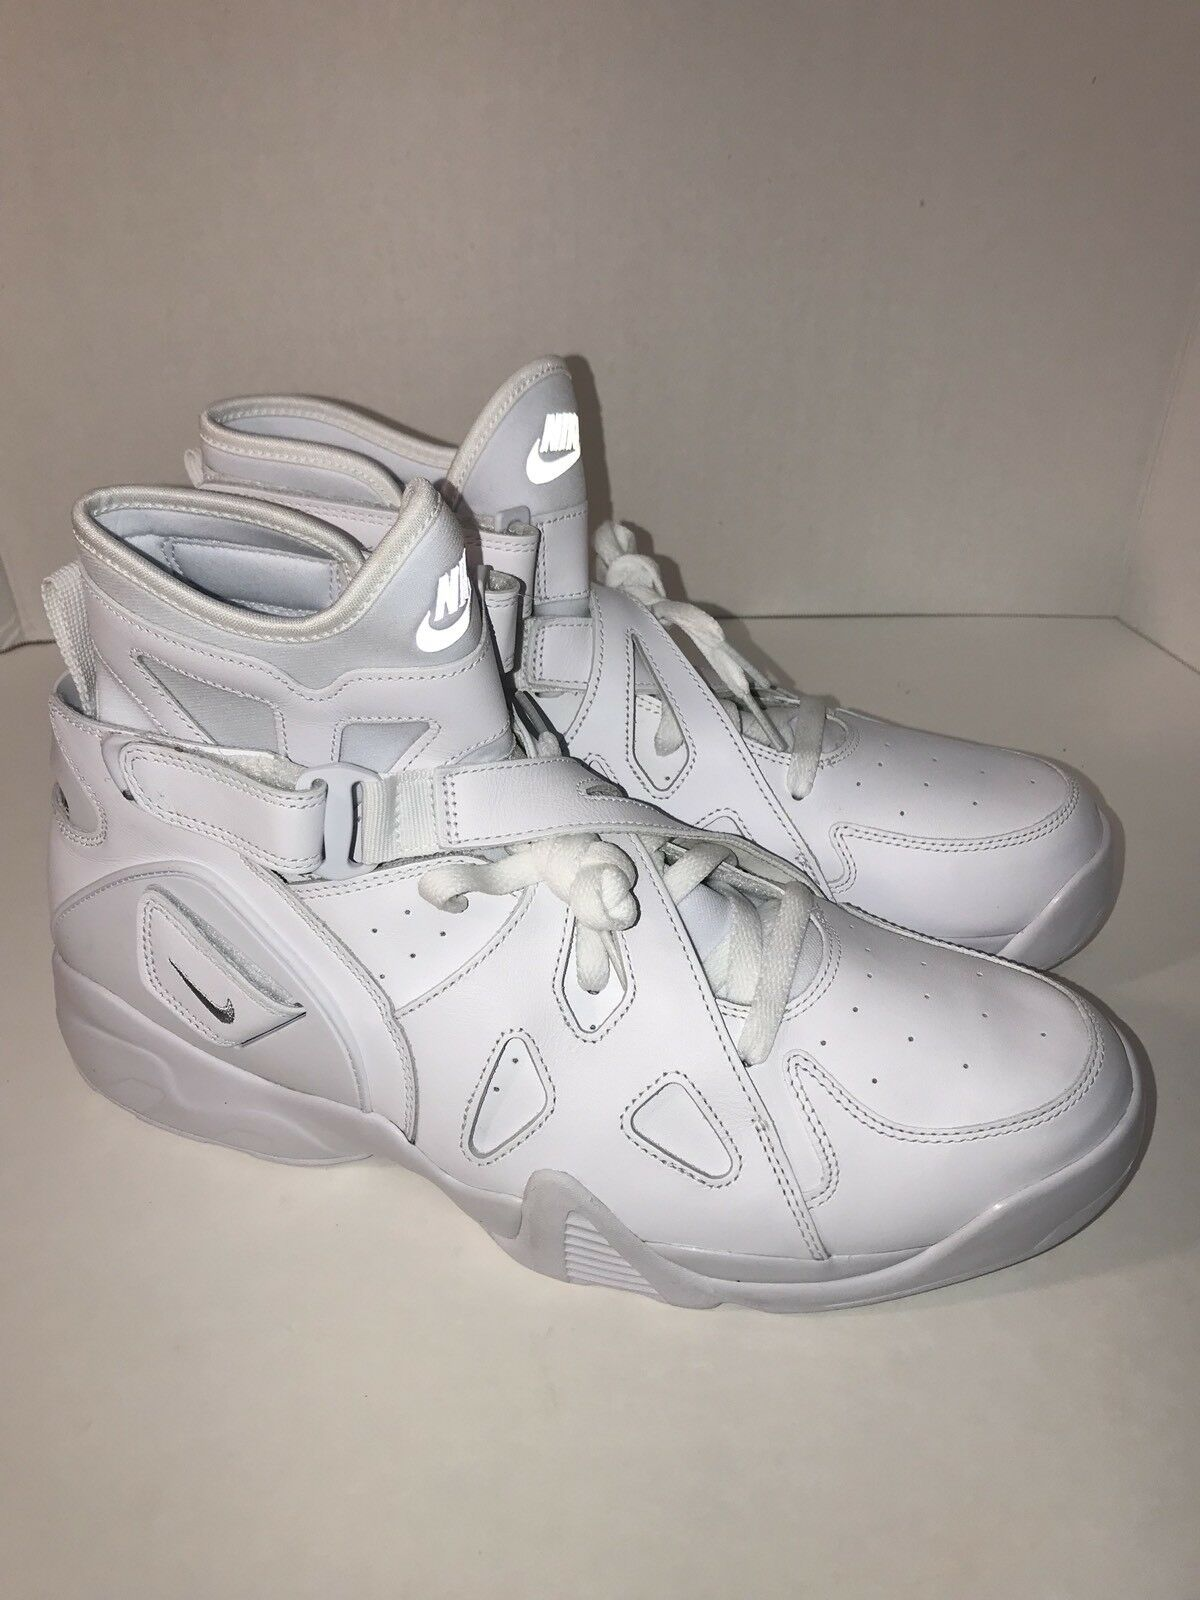 Nike AIR UNLIMITED Triple White Size 13 (889013-100) Basketball High Top